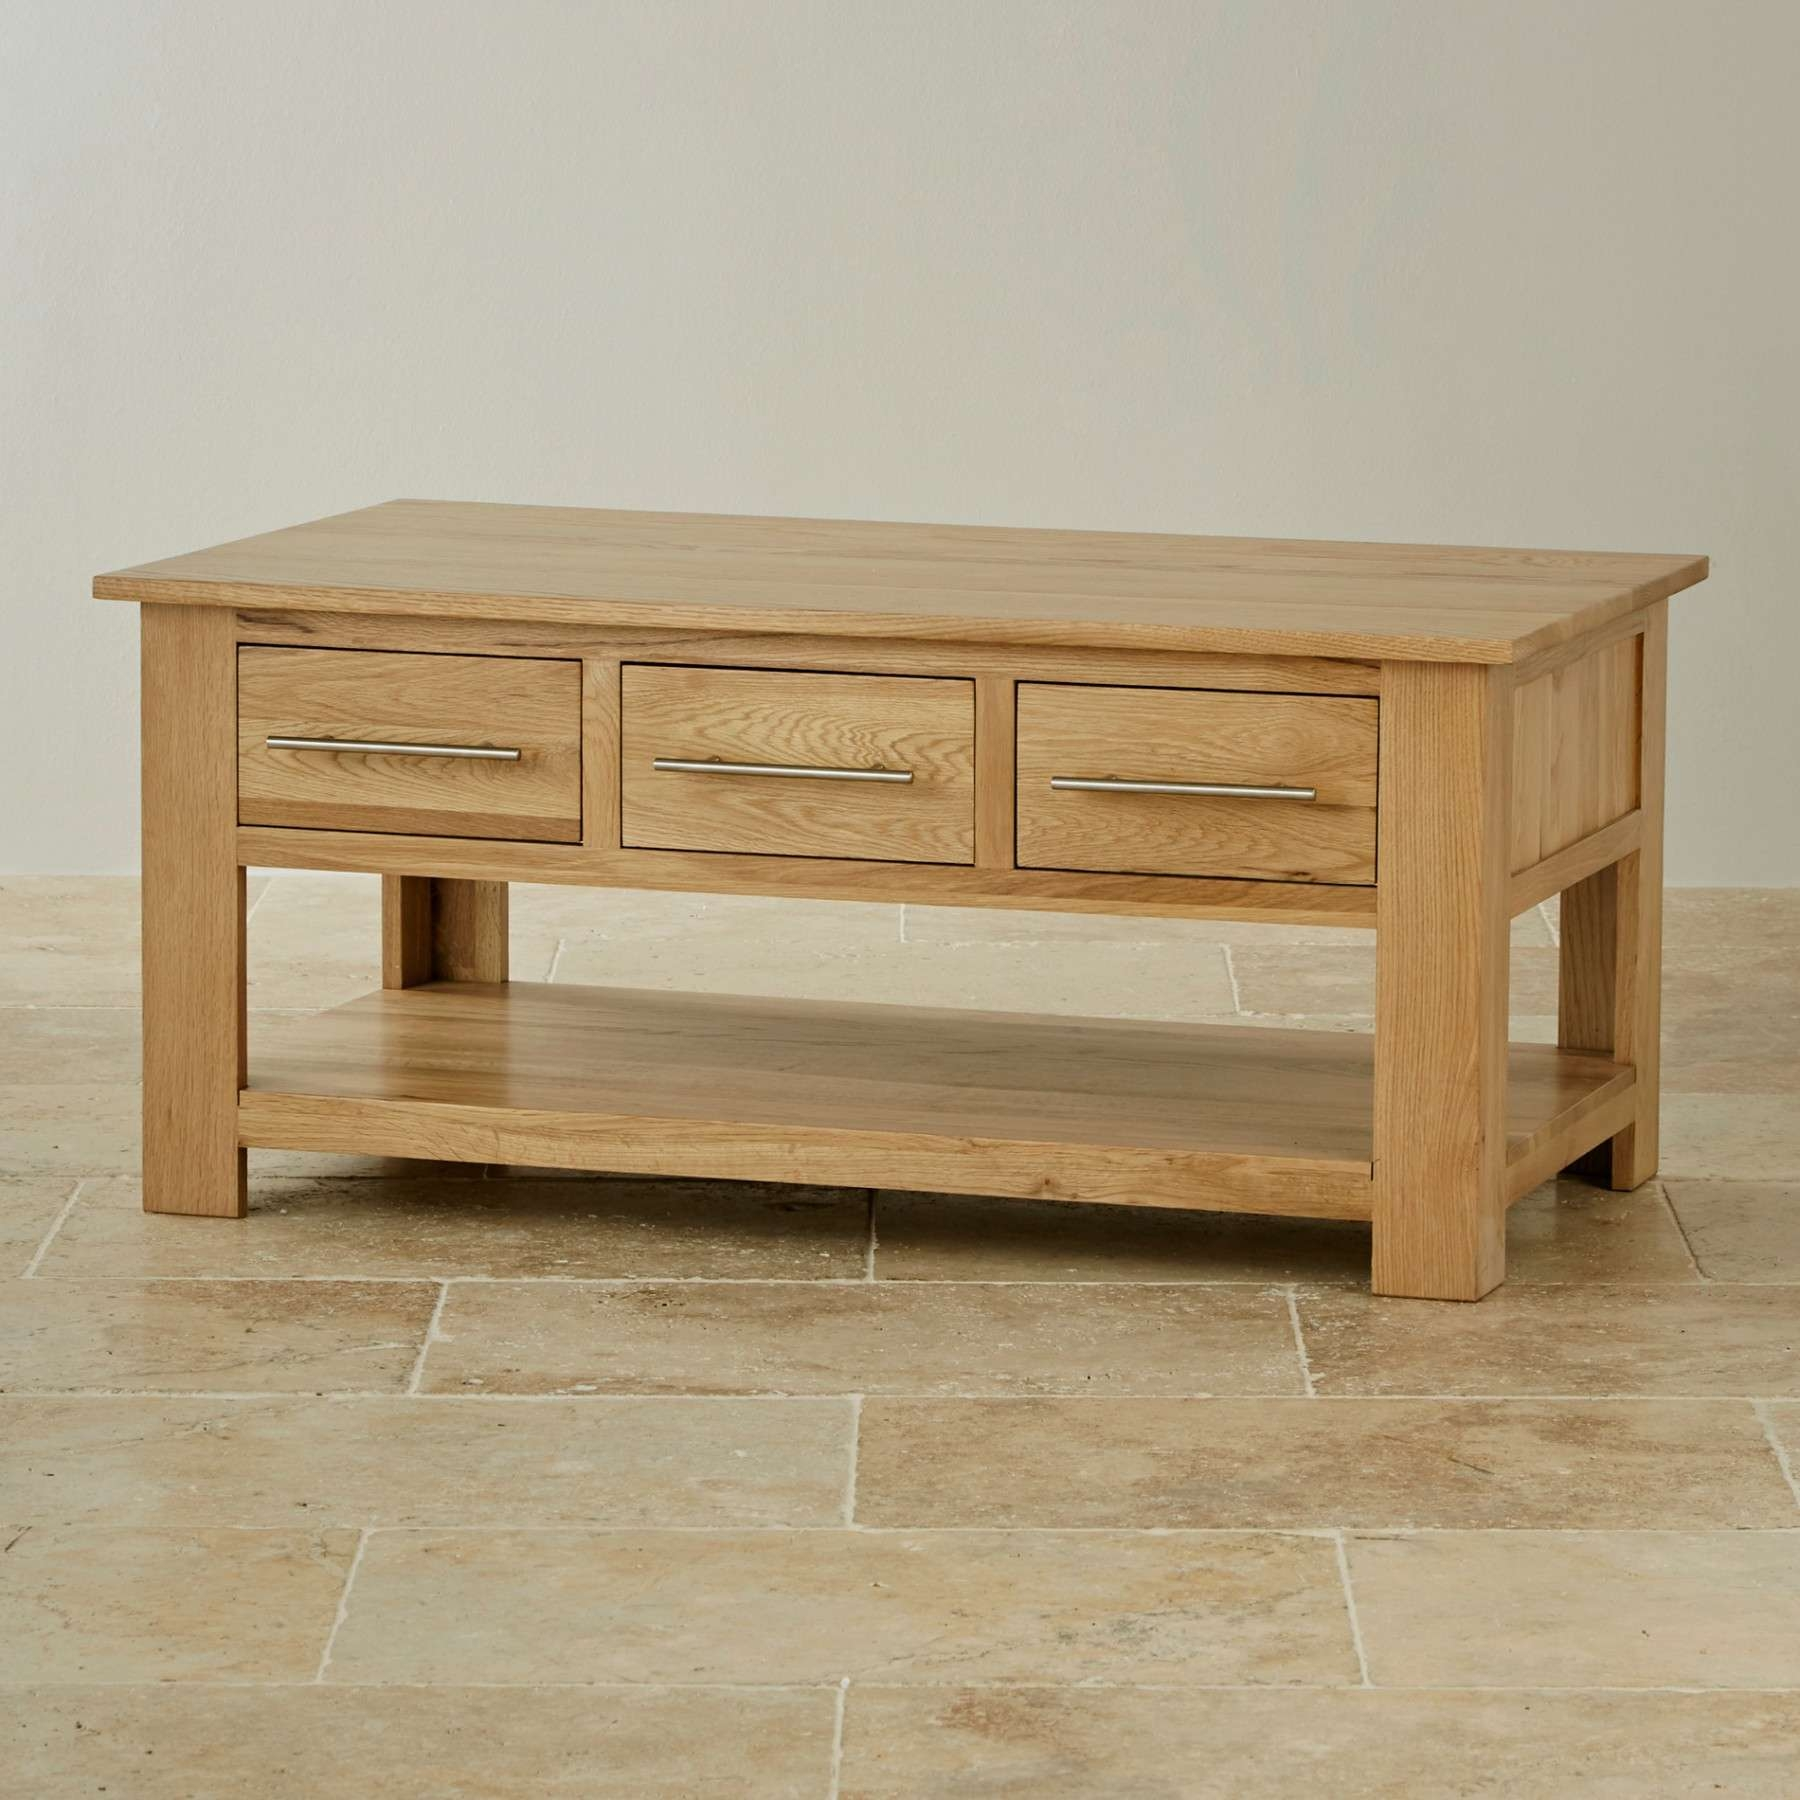 Famous Solid Oak Coffee Table With Storage For Coffee Tables (View 5 of 20)